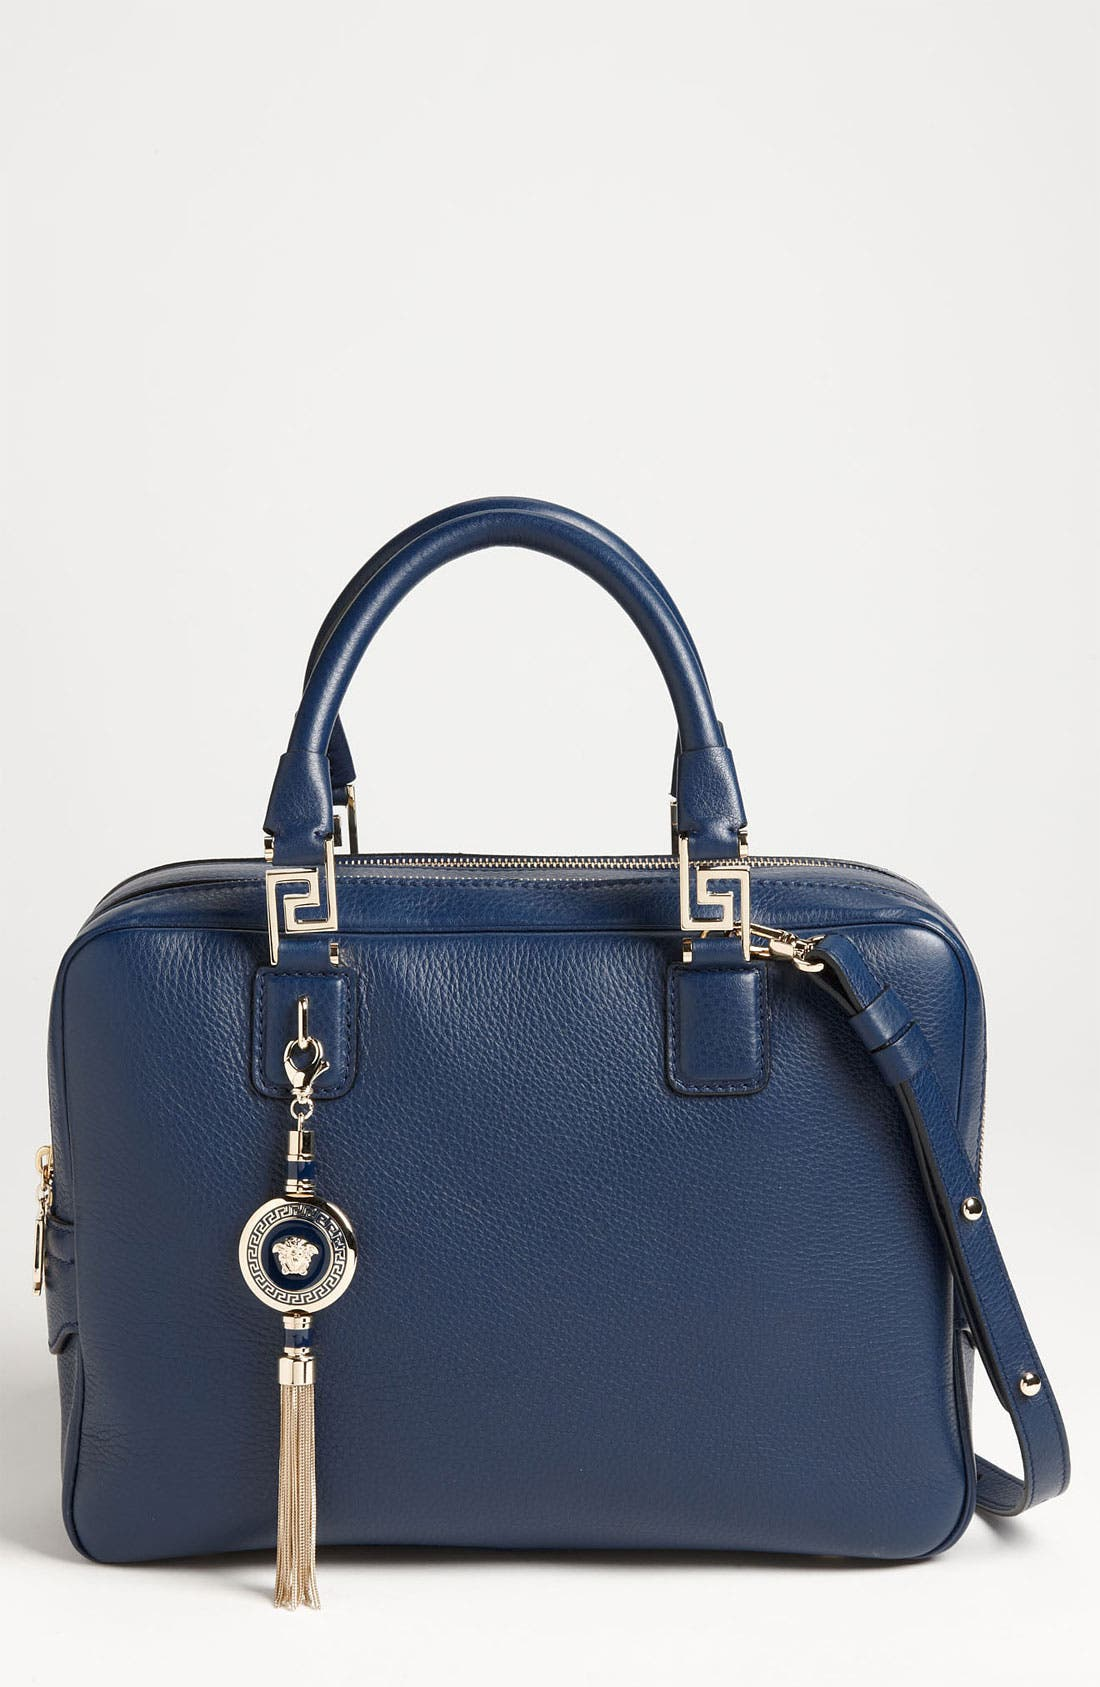 Main Image - Versace Structured Leather Satchel